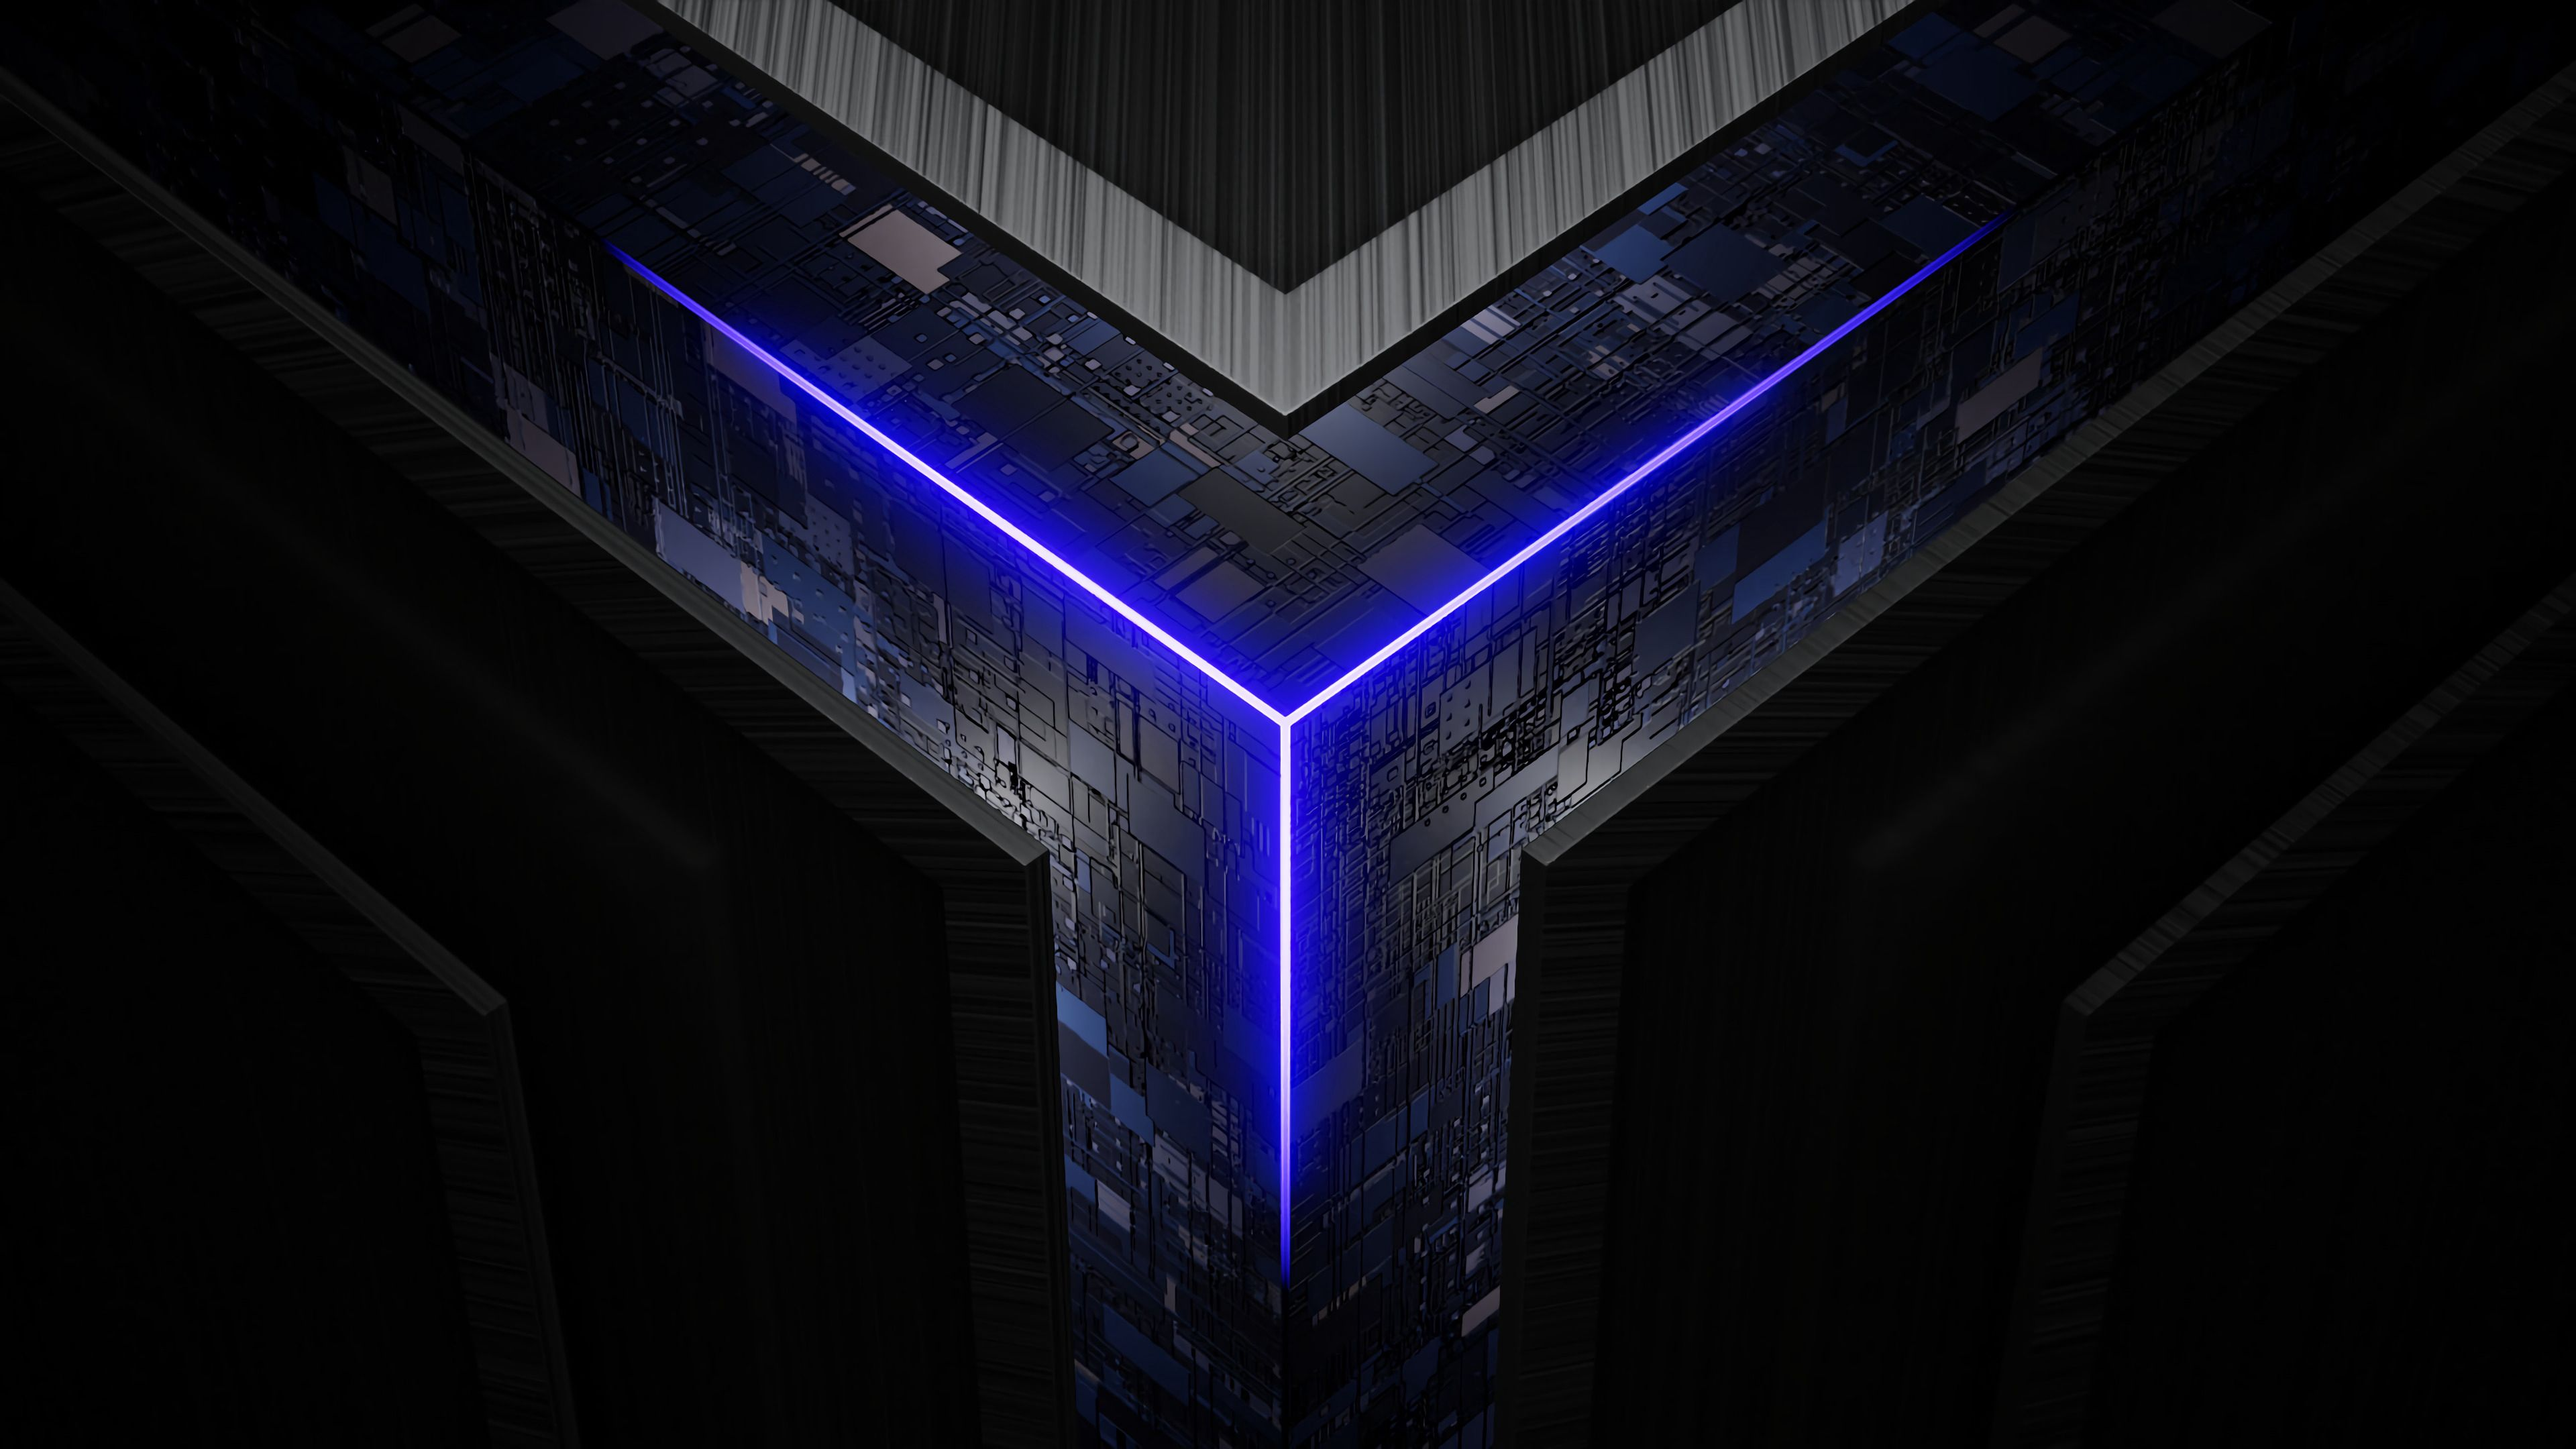 101725 download wallpaper 3D, Neon, Glow, Cube, Scheme, Chips screensavers and pictures for free